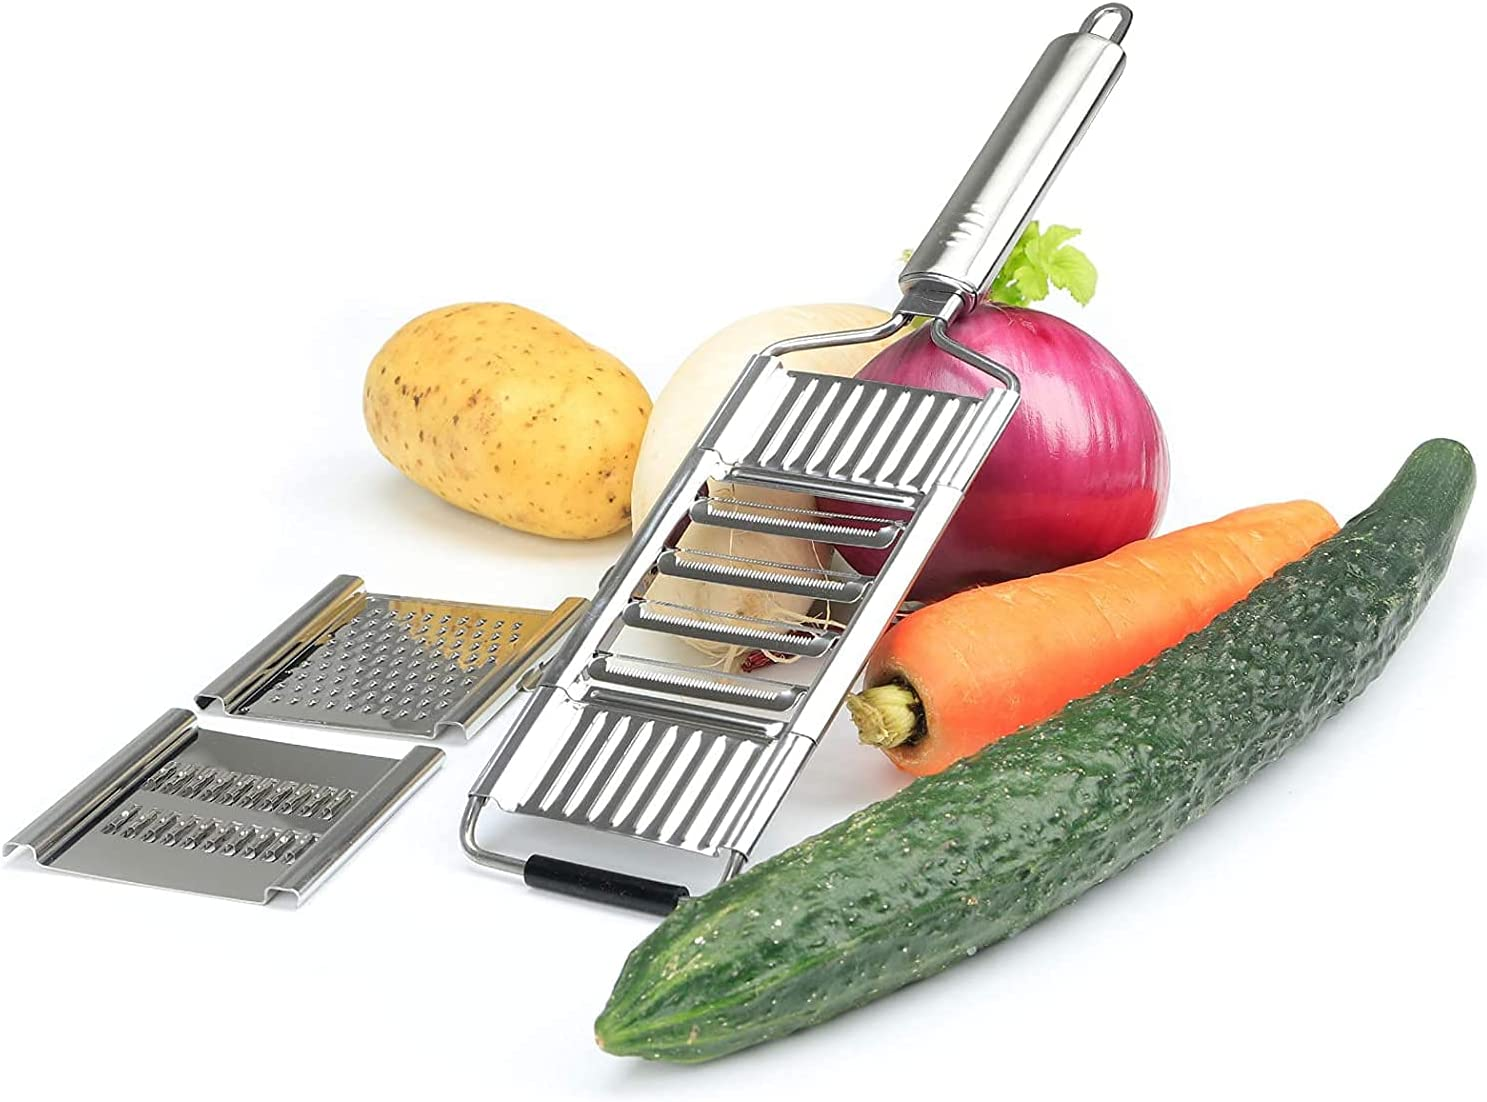 3-In-1 Stainless Steel Multifunctional Vegetable Cutter National uniform free shipping Cheese Arlington Mall